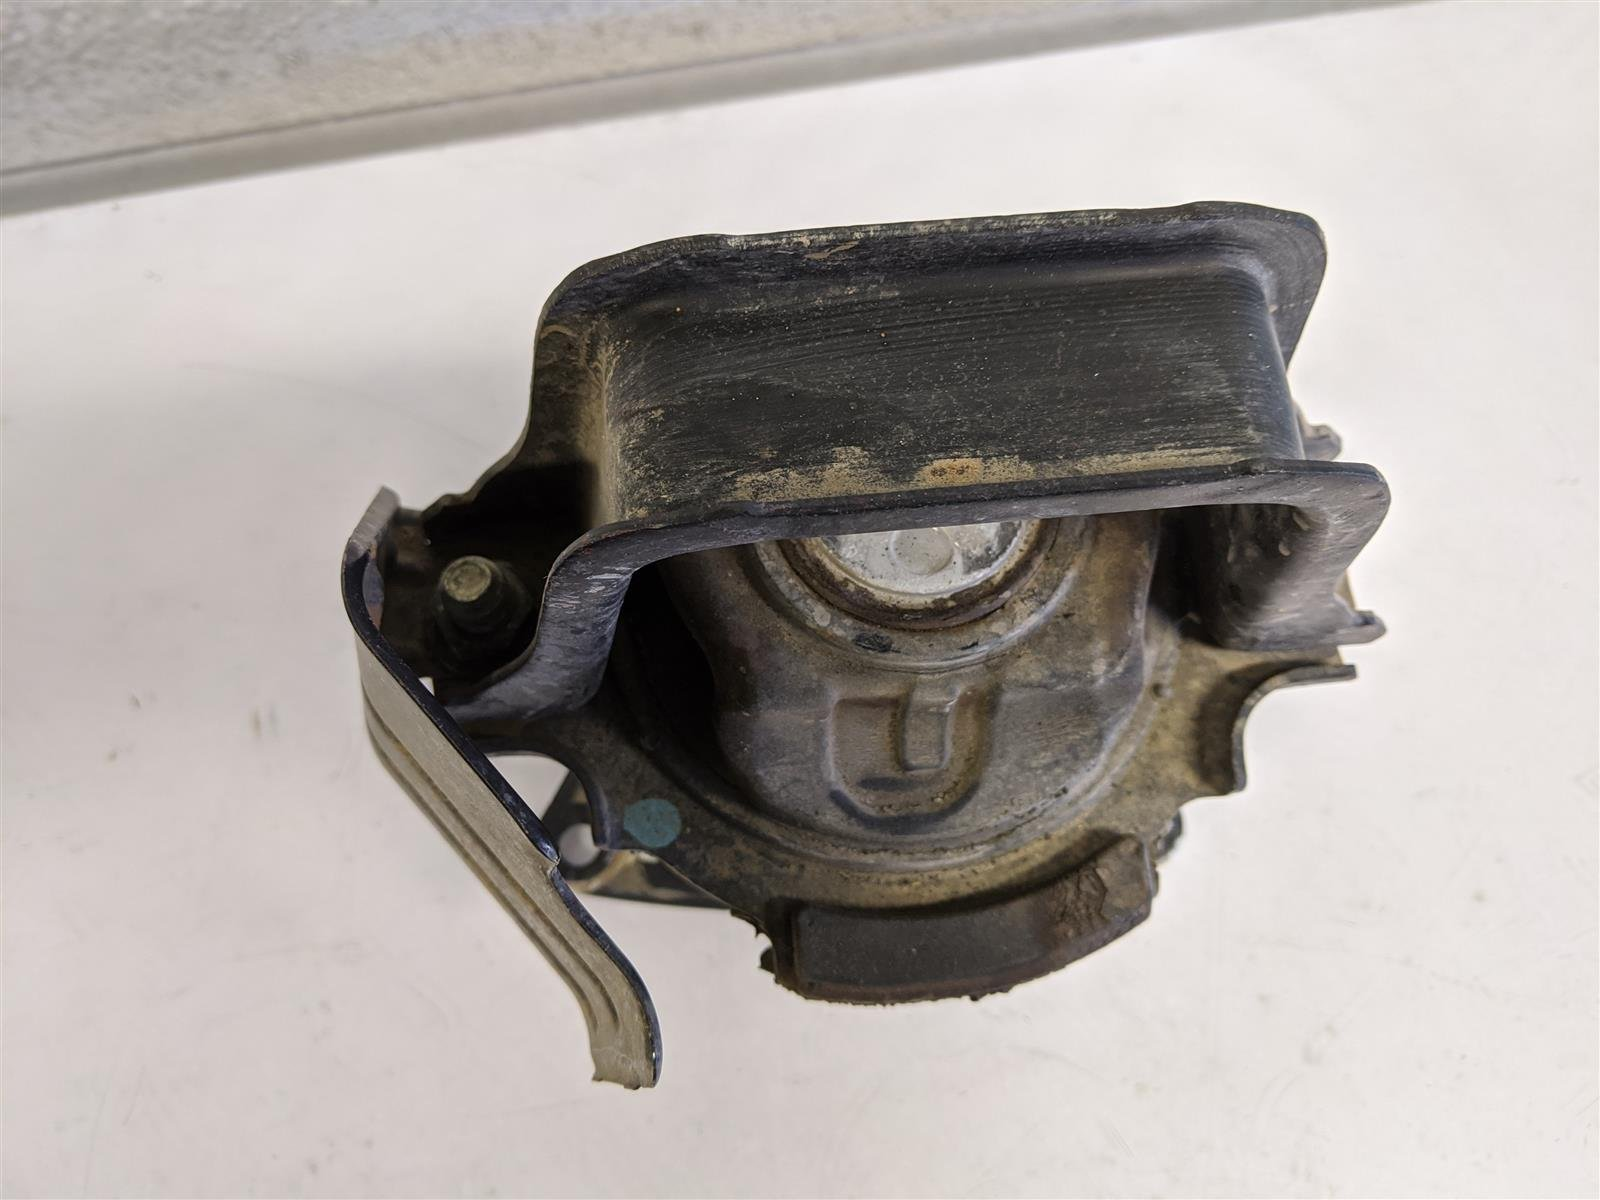 2018 Honda Odyssey Rear Engine Mount Replacement